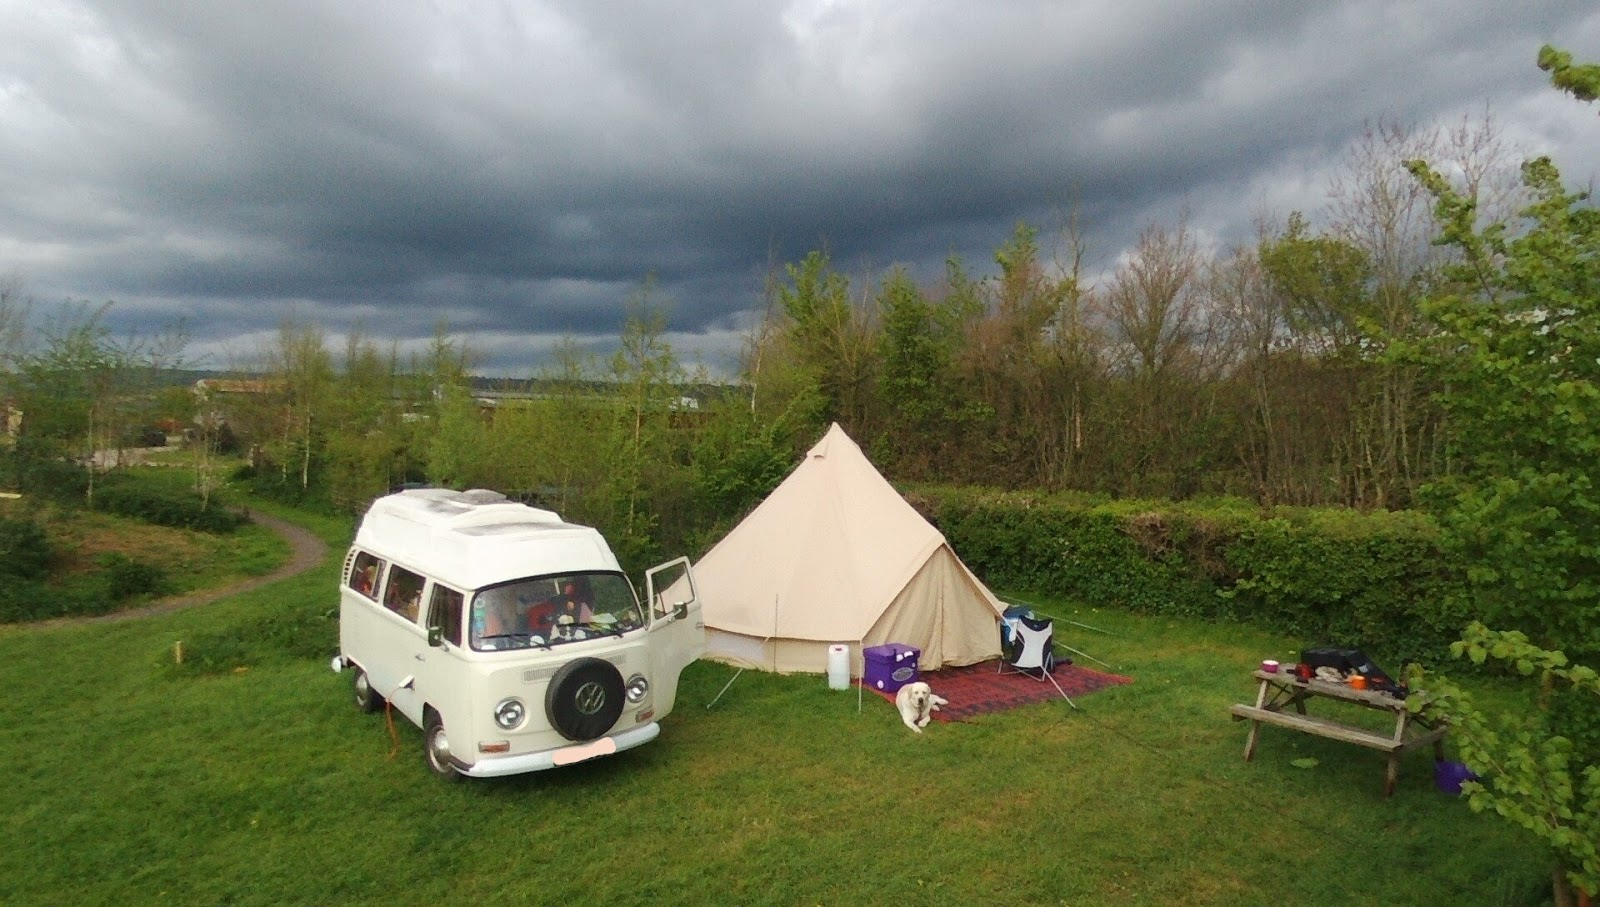 Bells & Labs: REVIEW: 'Camping under the Stars' 5m Bell Tent